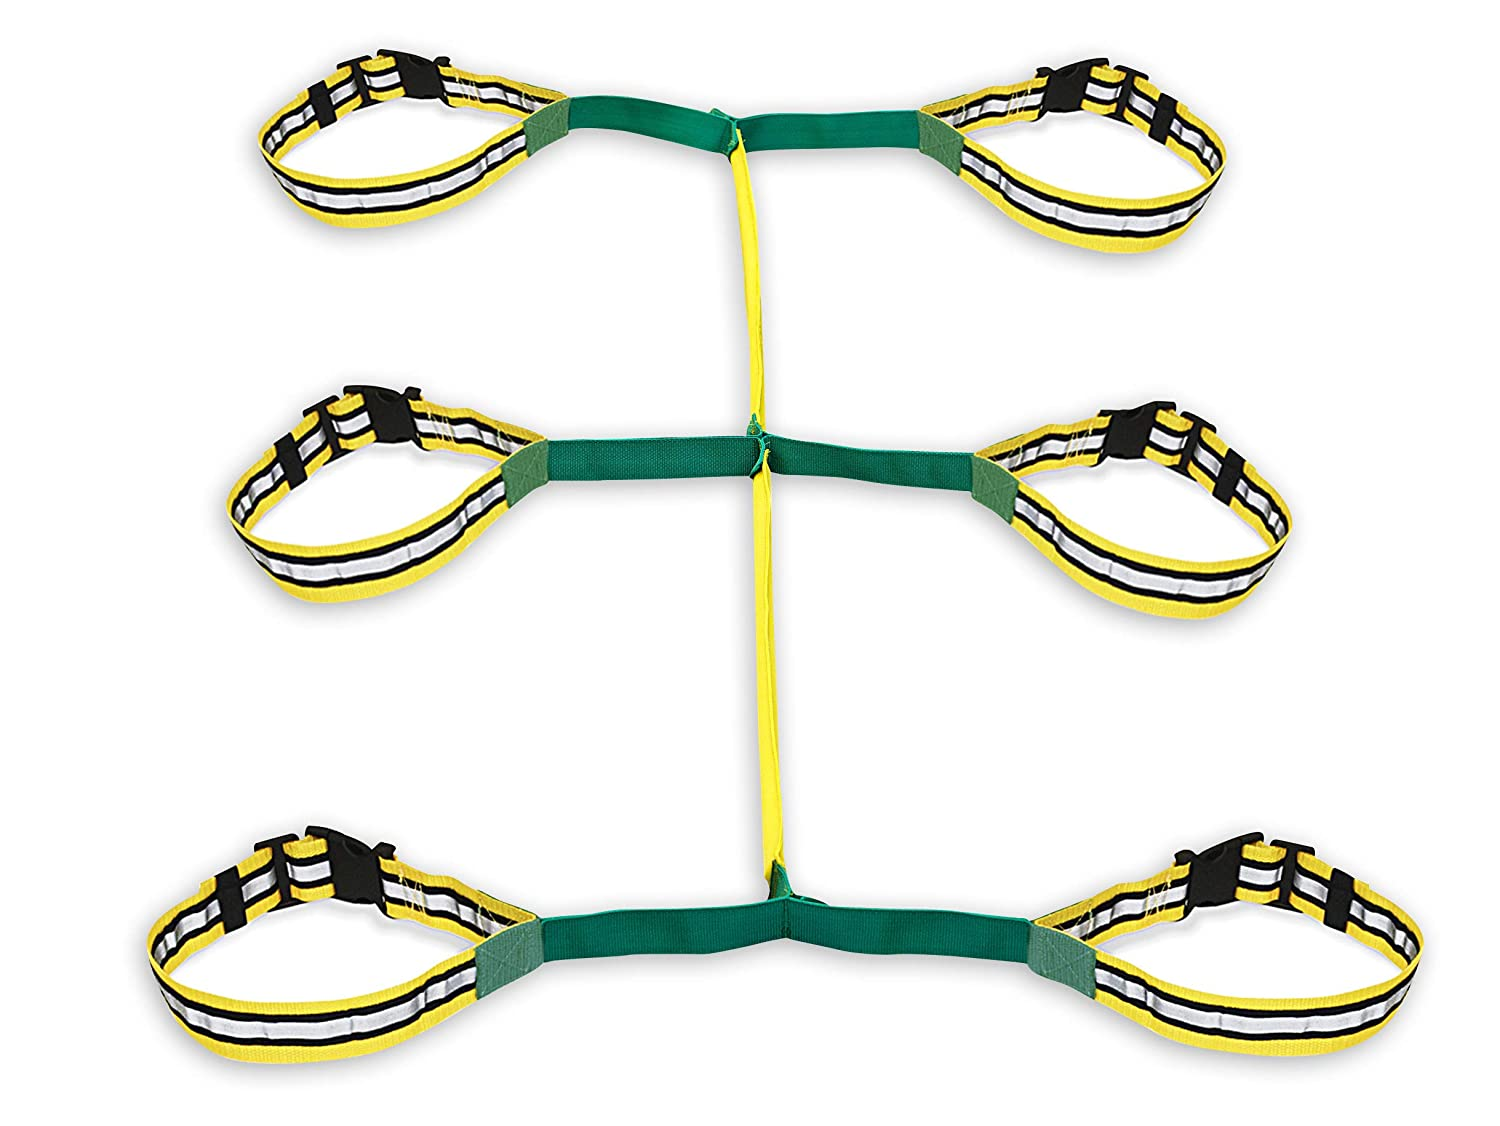 Walkodile Safety Web (6 Child), Childrens Walking Rope. Teacher Designed, Daycare Walking Leash. Also Includes Free Learning Games for Walks Guide